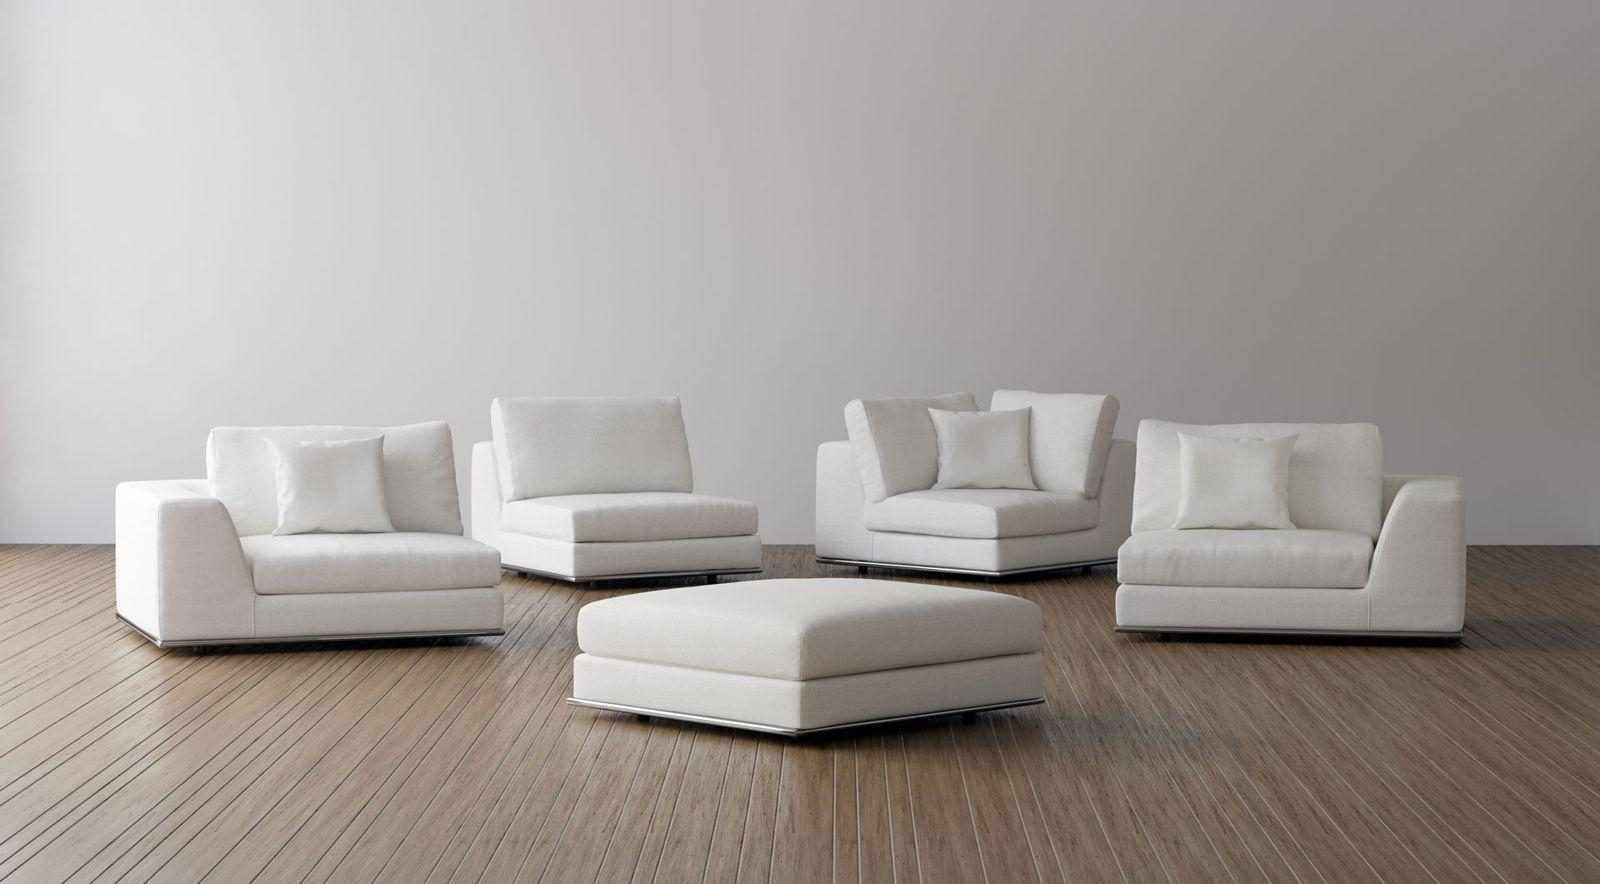 Perry Preconfigured Three Seat Sofa With Ottomanmodloft Inside Mod Sofas (Image 13 of 20)